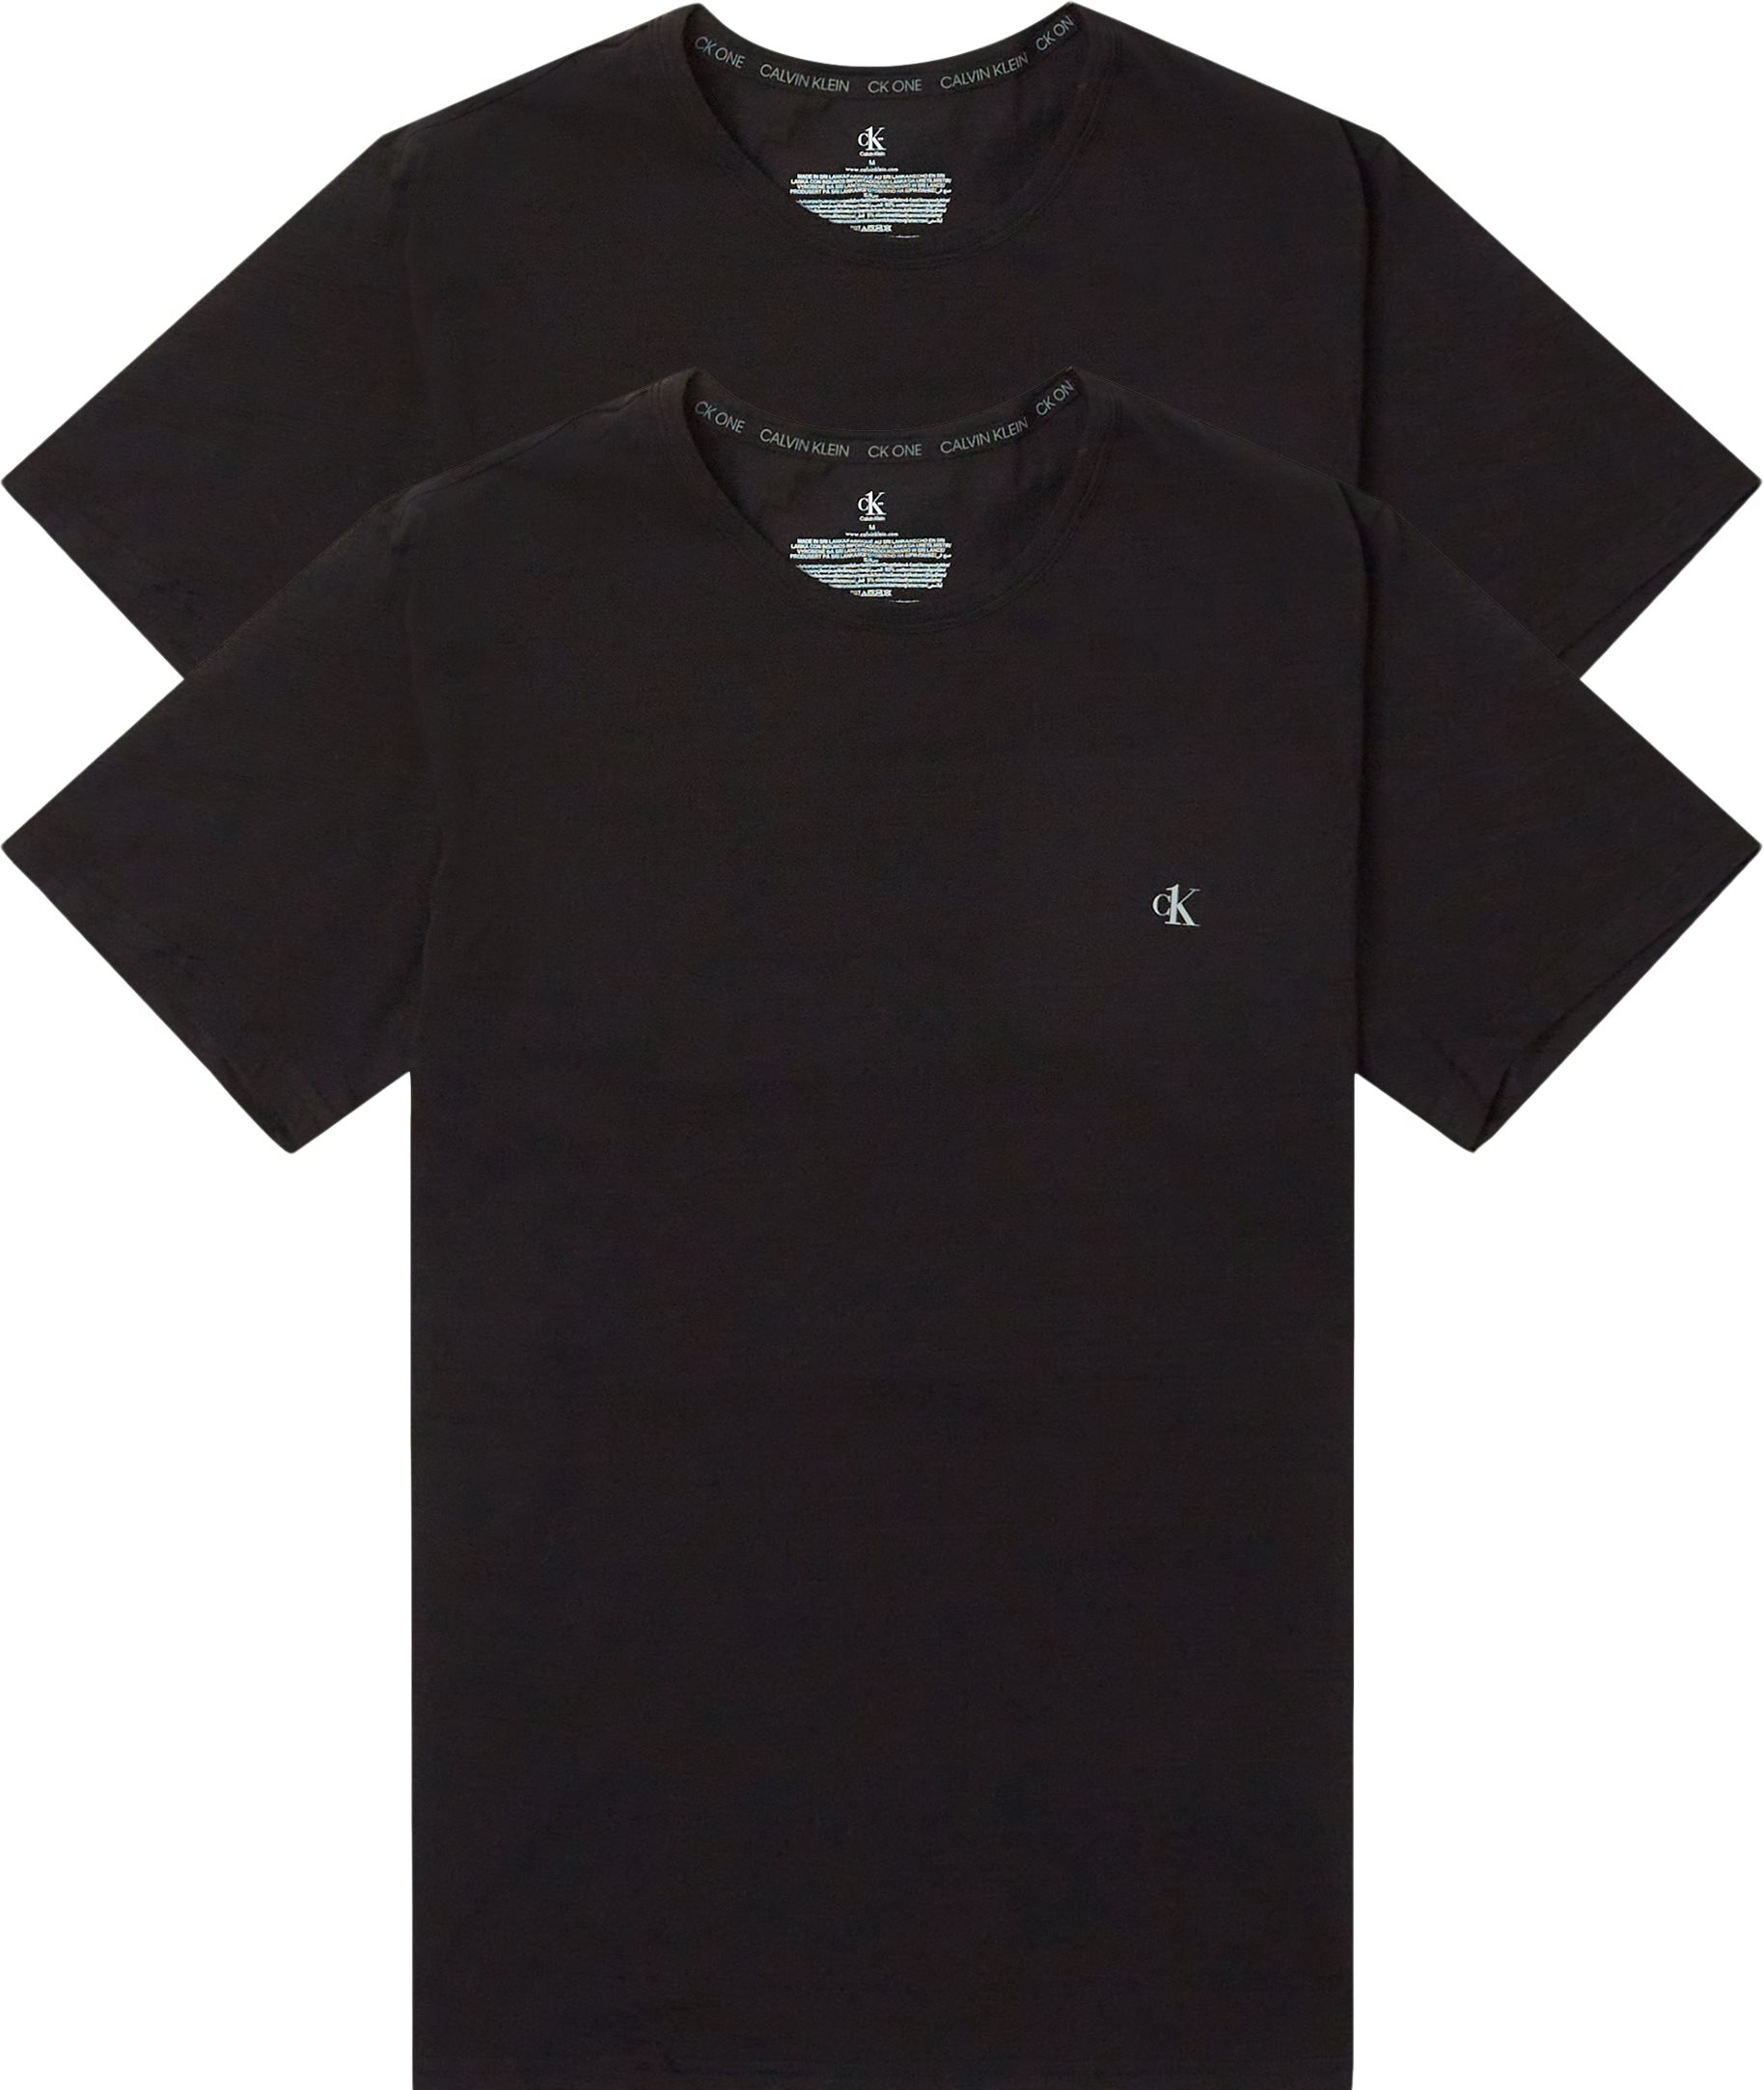 T-shirts - Regular fit - Svart